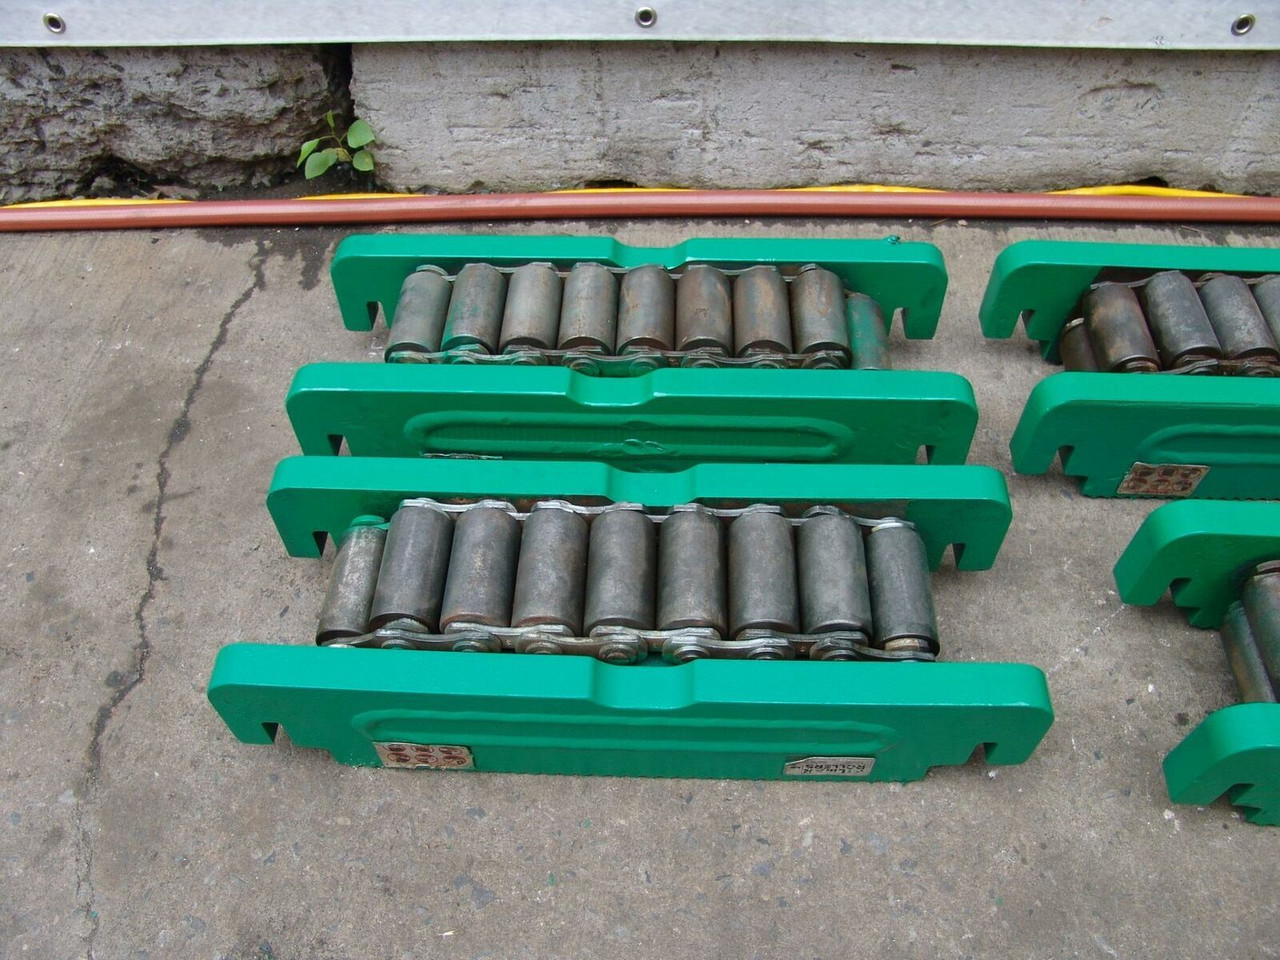 HILMAN 400 TON ROLLERS MACHINERY MOVERS SET OF 4 100 TONS EACH NICE SET  #2